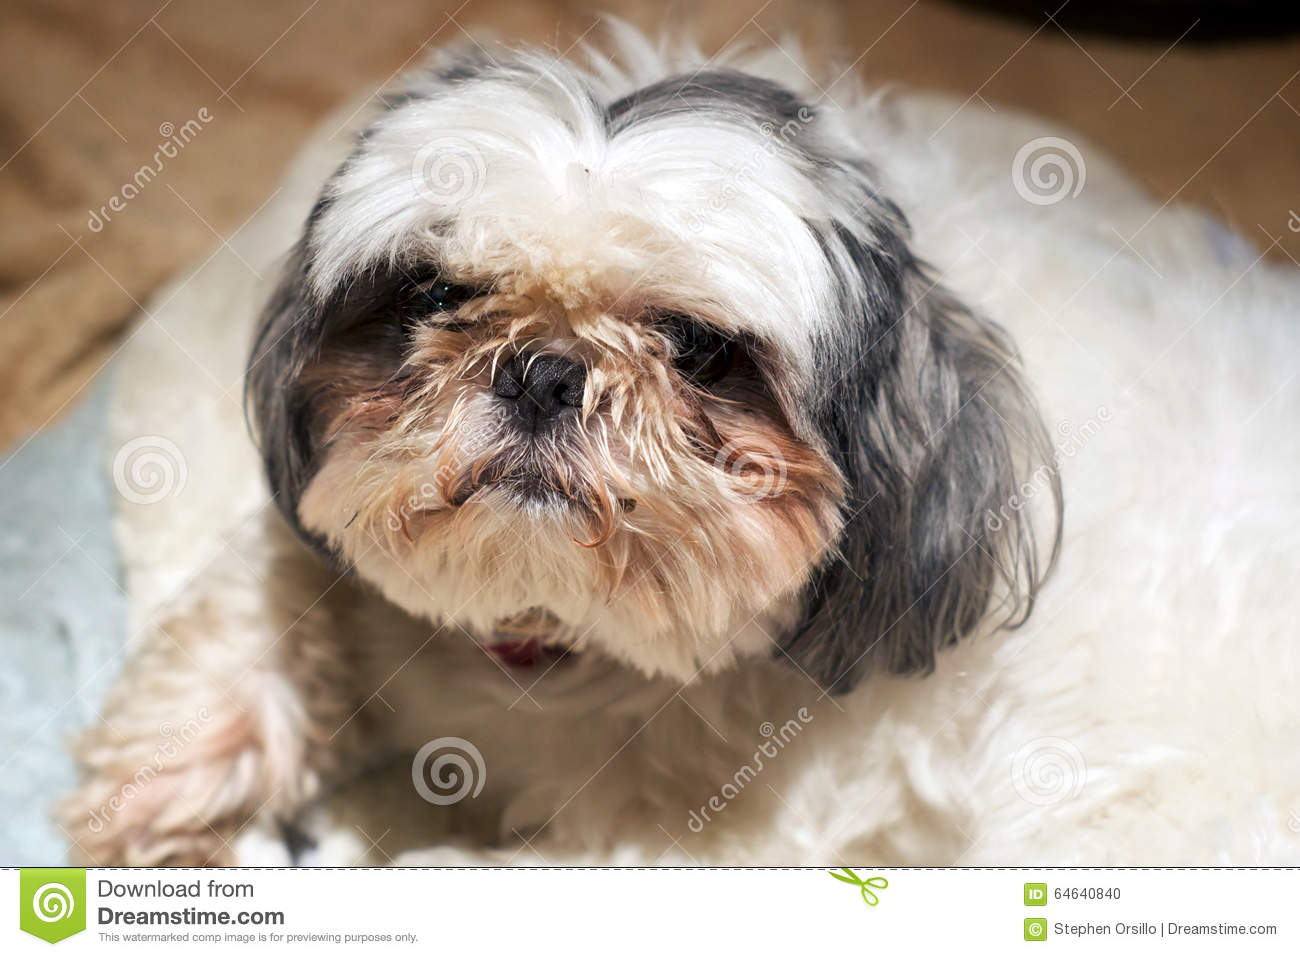 Shih Tzu dog with dirty face